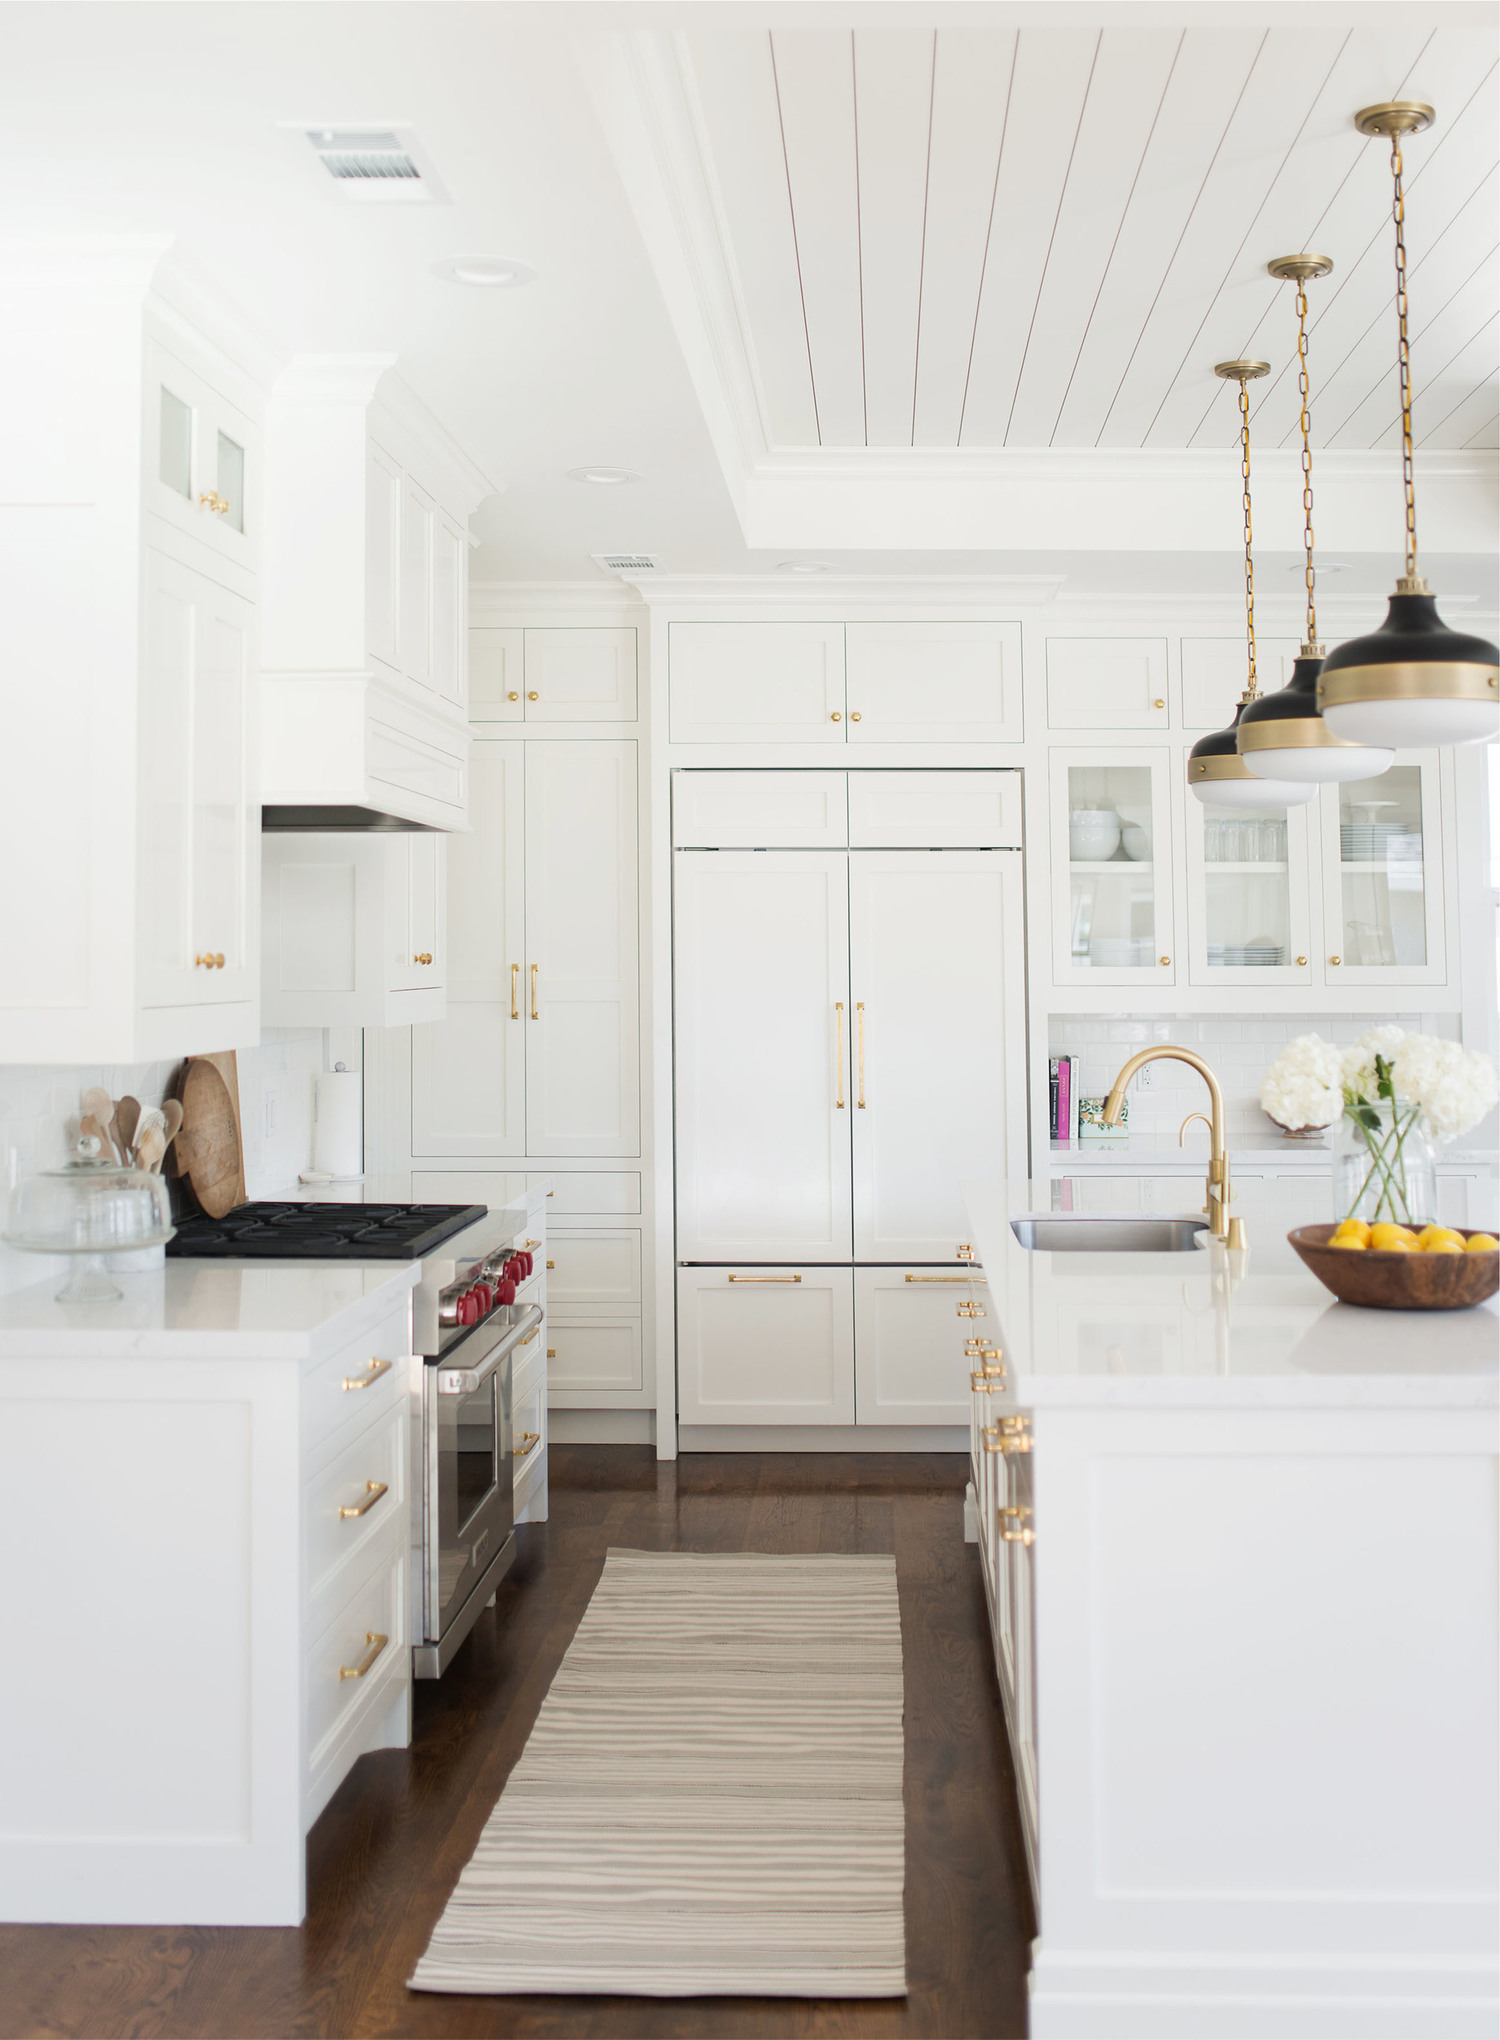 White+and+G3old+Kitchen+E-Design+by+Studio+McGee.jpg